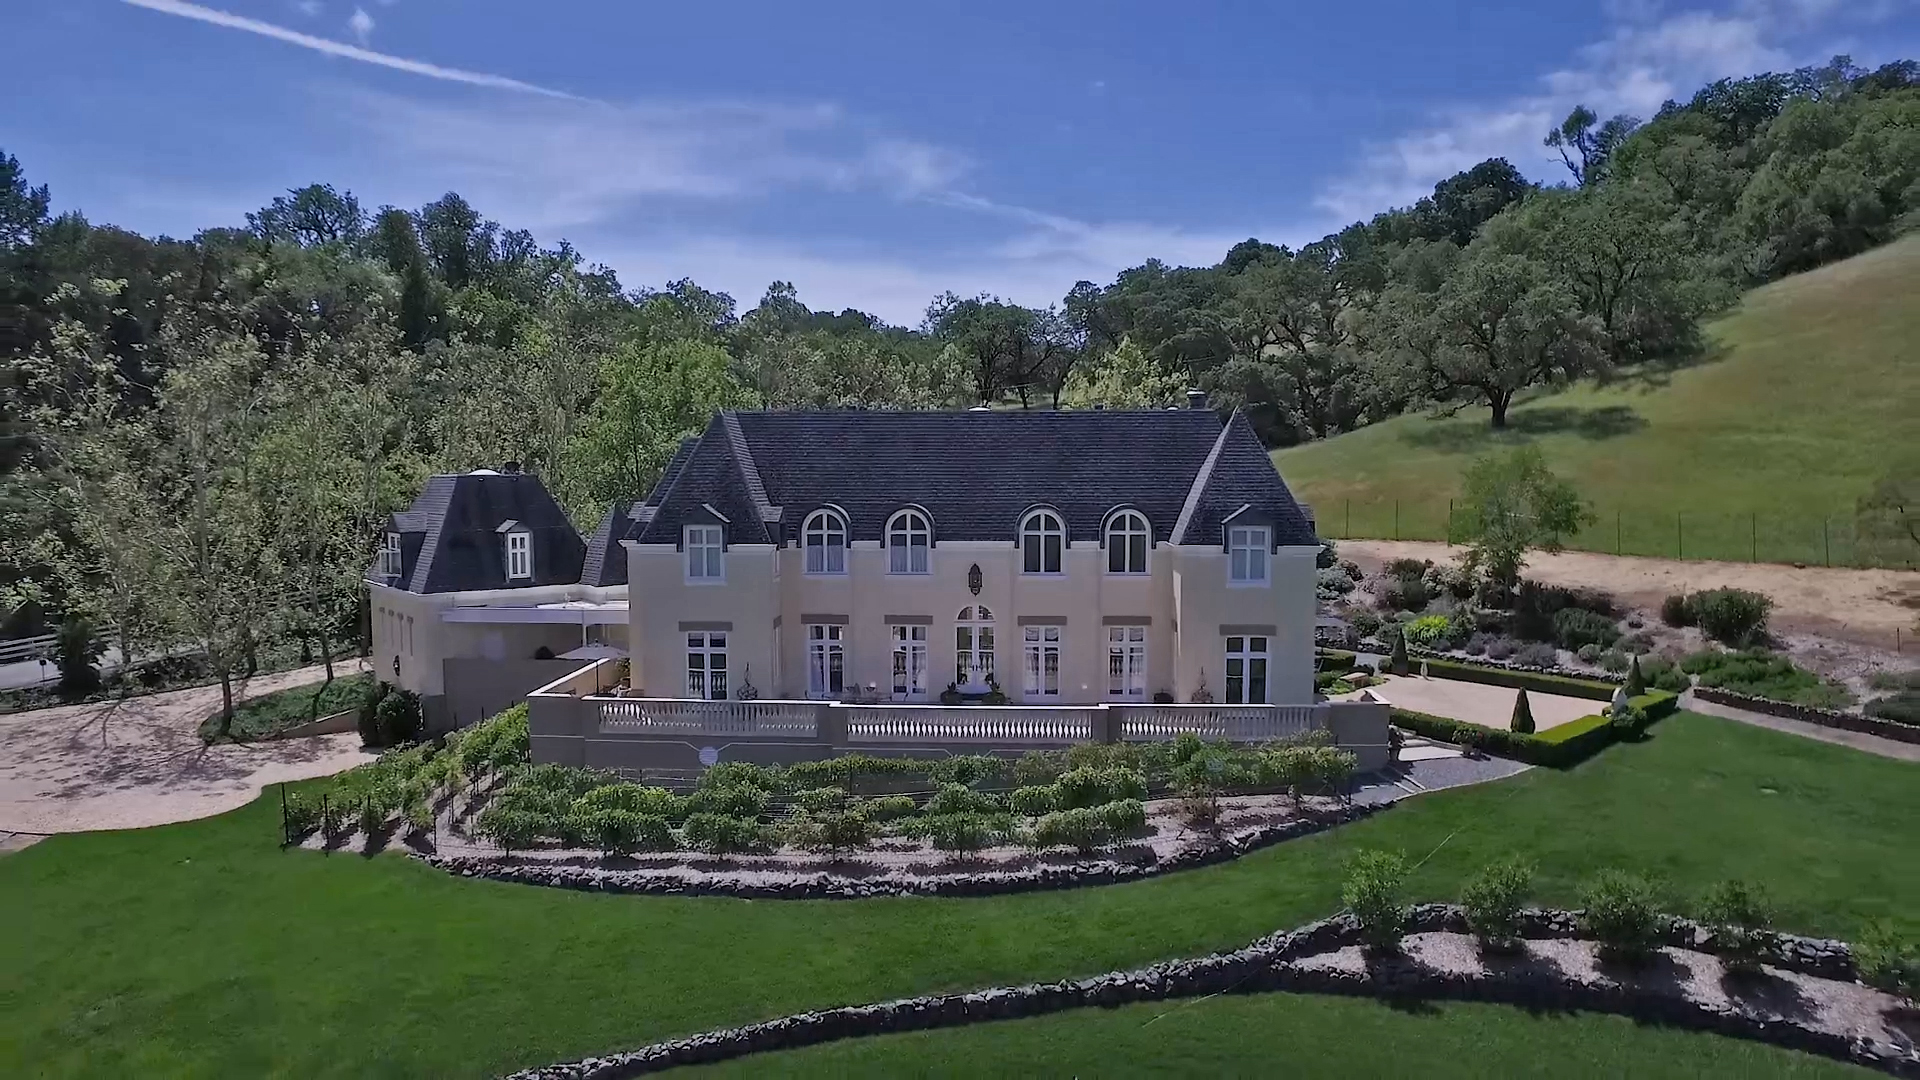 Single Family Home for Sale at CHATEAU BOIS DE L'EST 4002 Old Barn Road Healdsburg, California 95448 United States